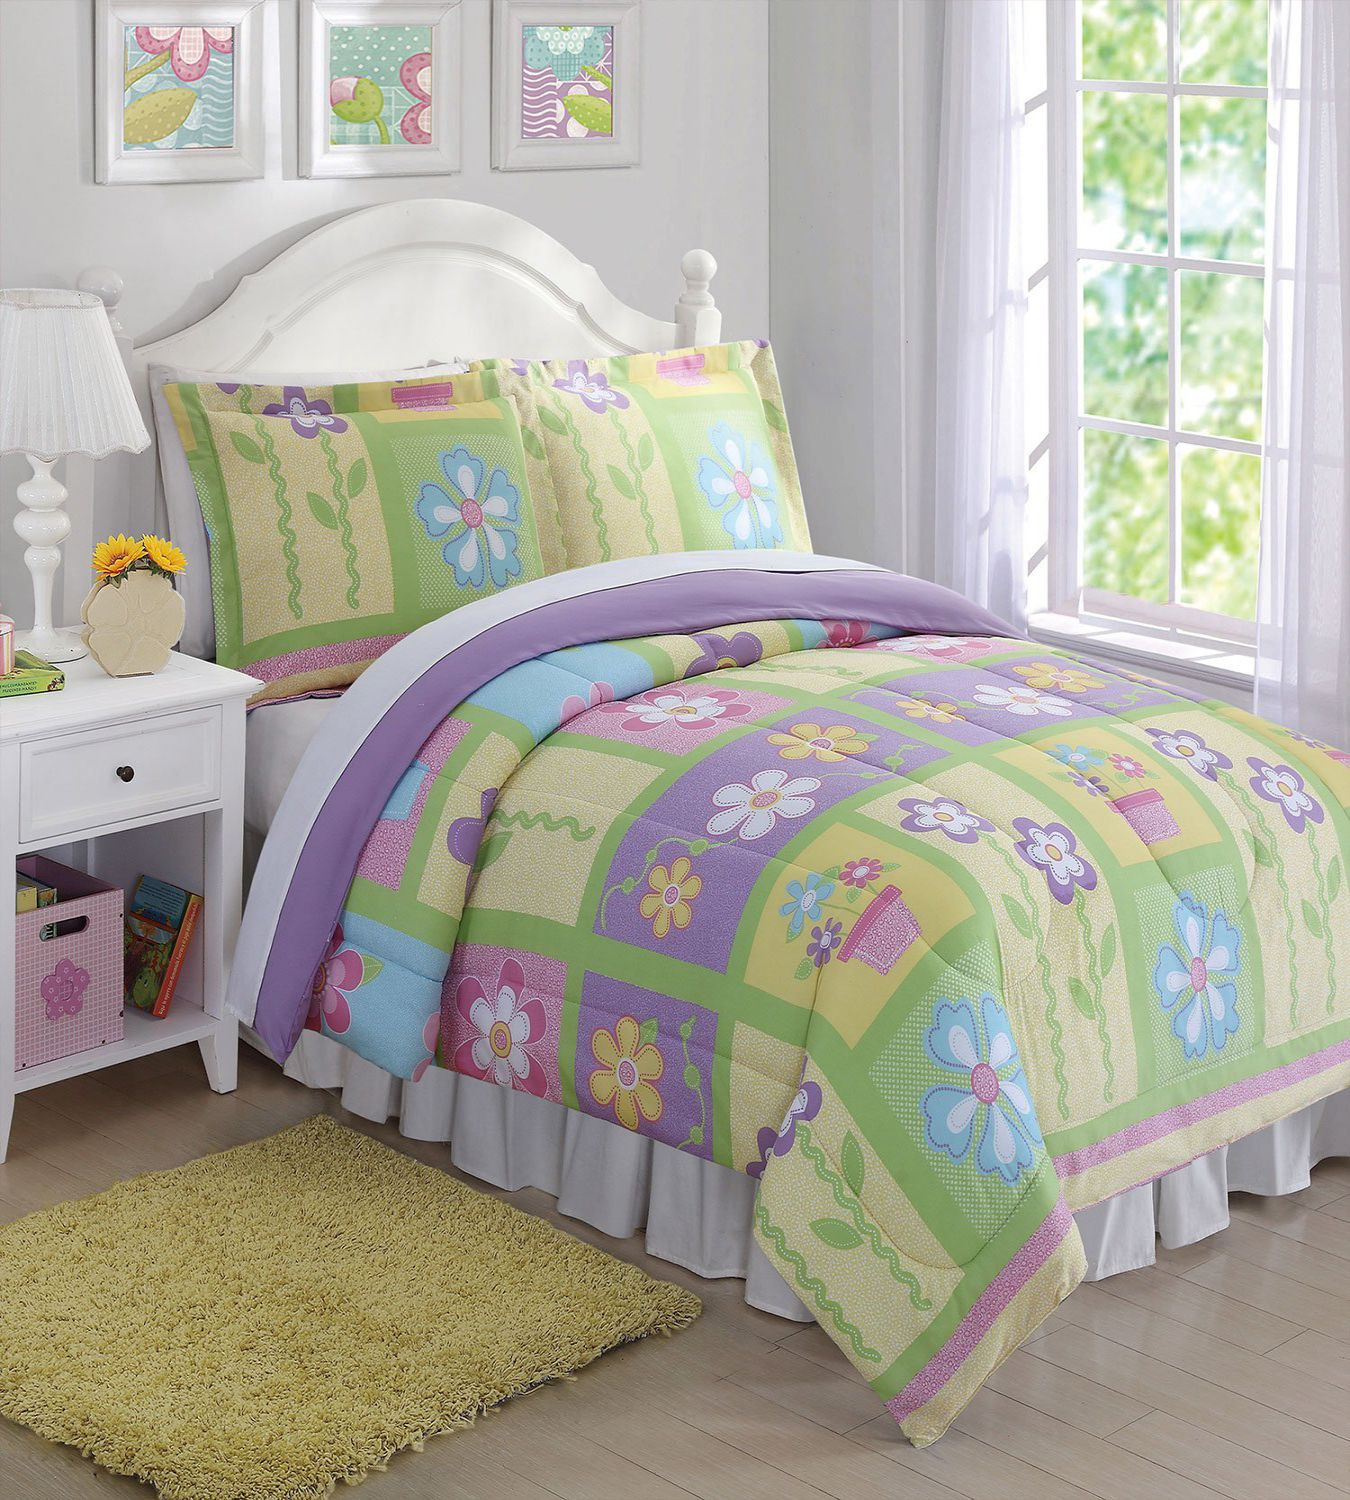 Laura Hart Kids Sweet Helena Full Queen Comforter Set